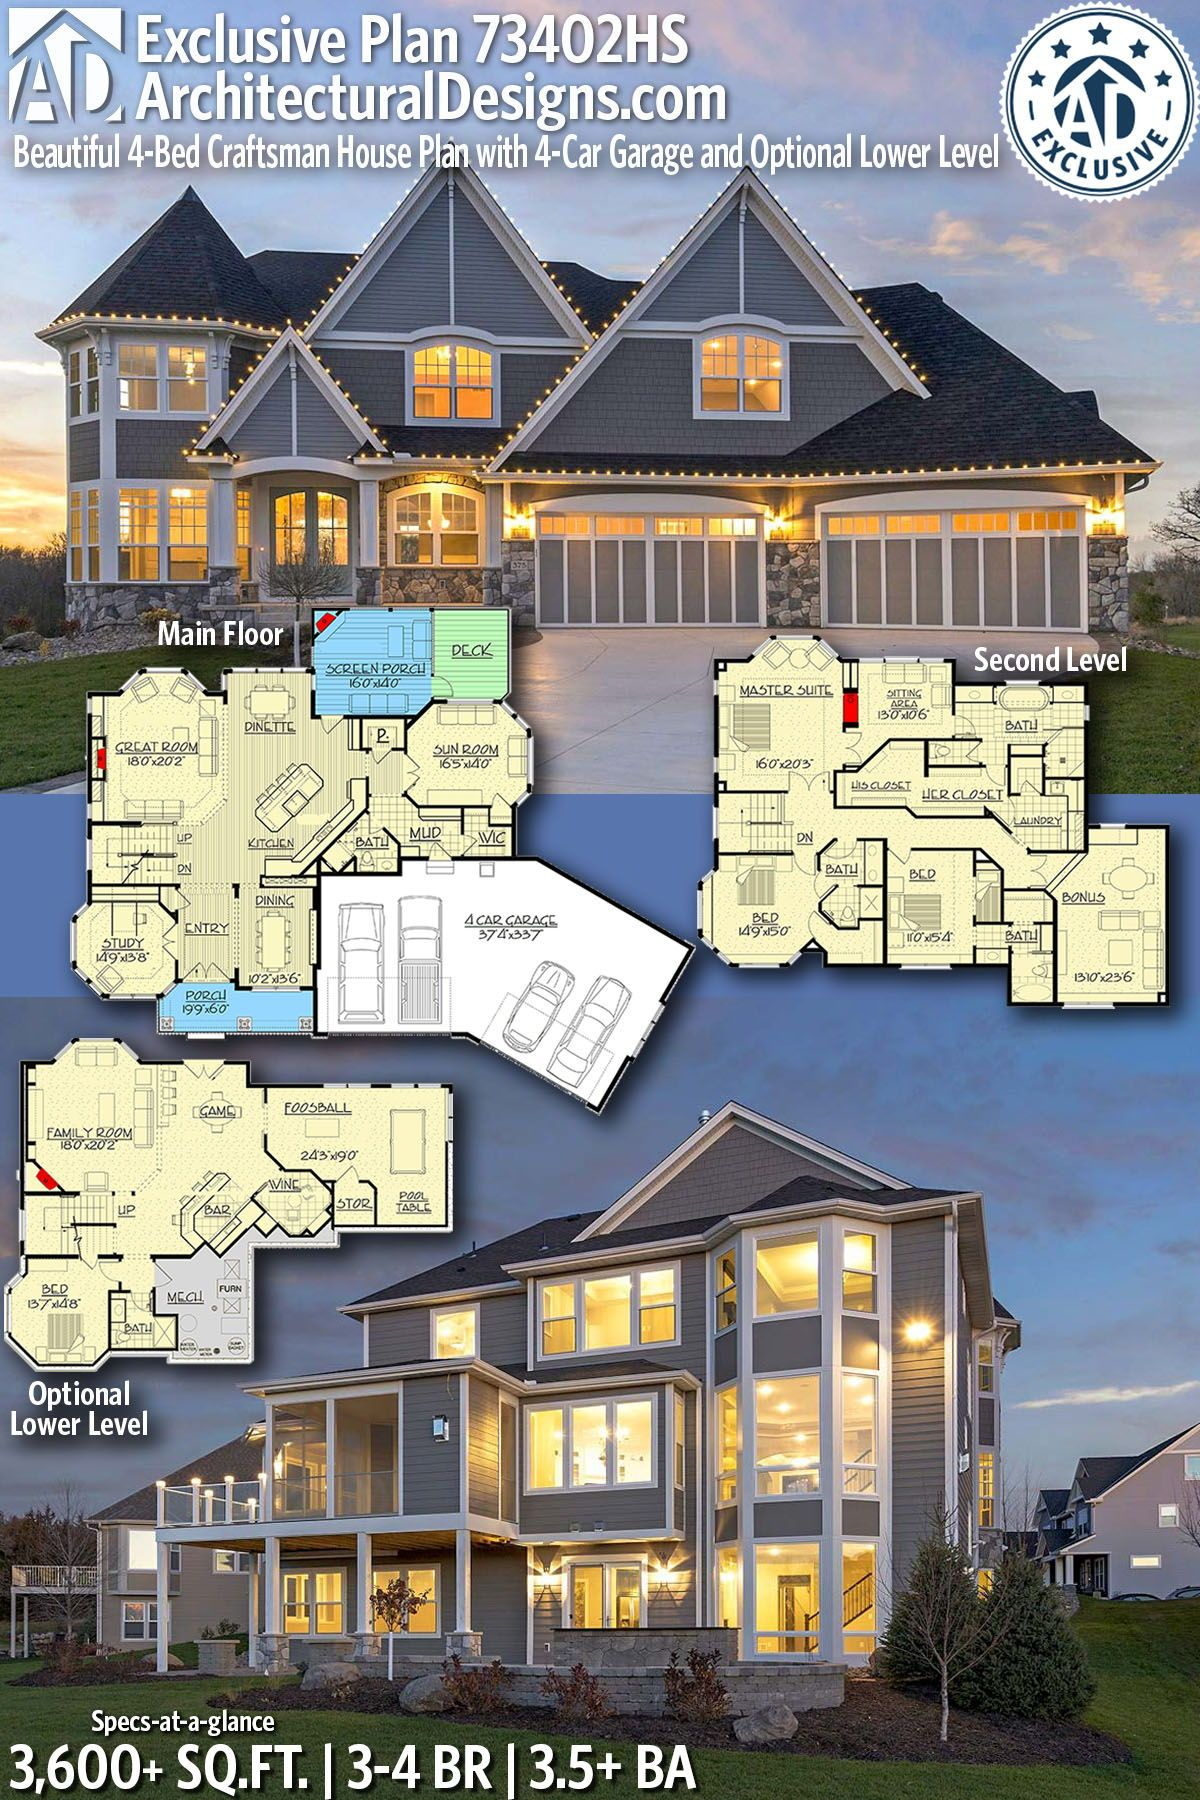 Architectural designs exclusive home plan hs gives you bedrooms baths also best homes for the sloping lot images in architecture rh pinterest